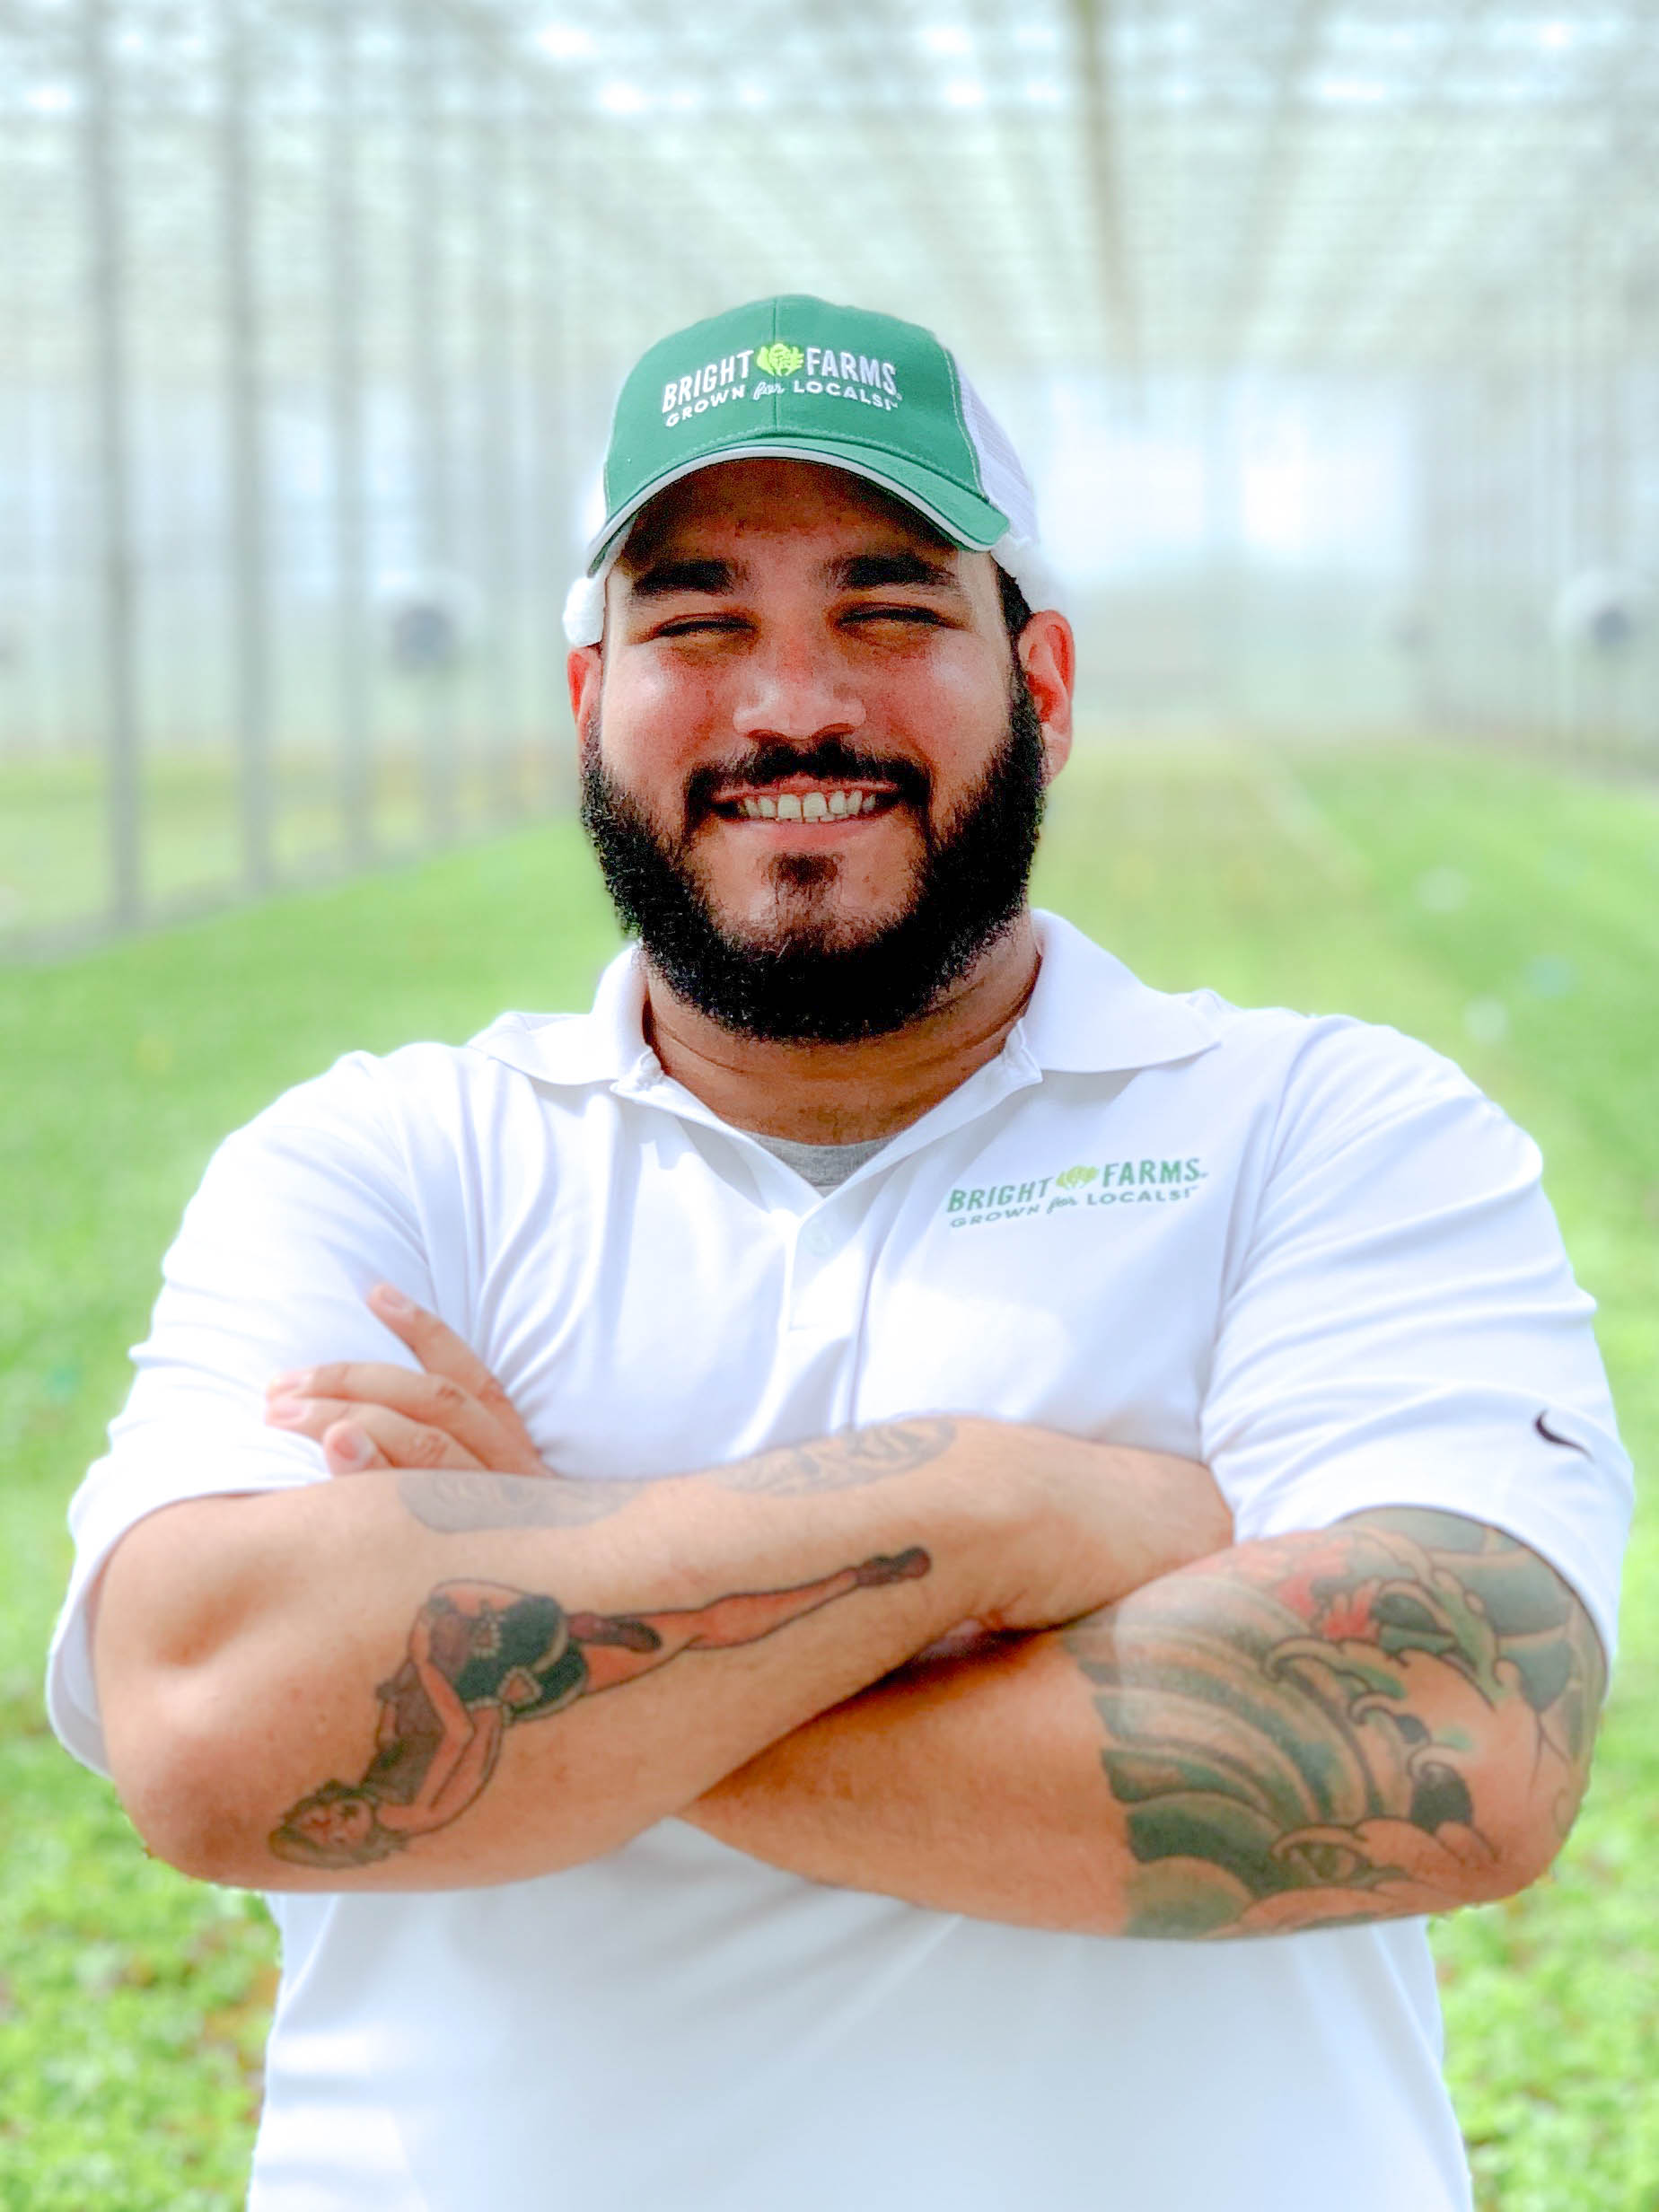 David DelPilar Head Grower BrightFarms CHI Greenhouse